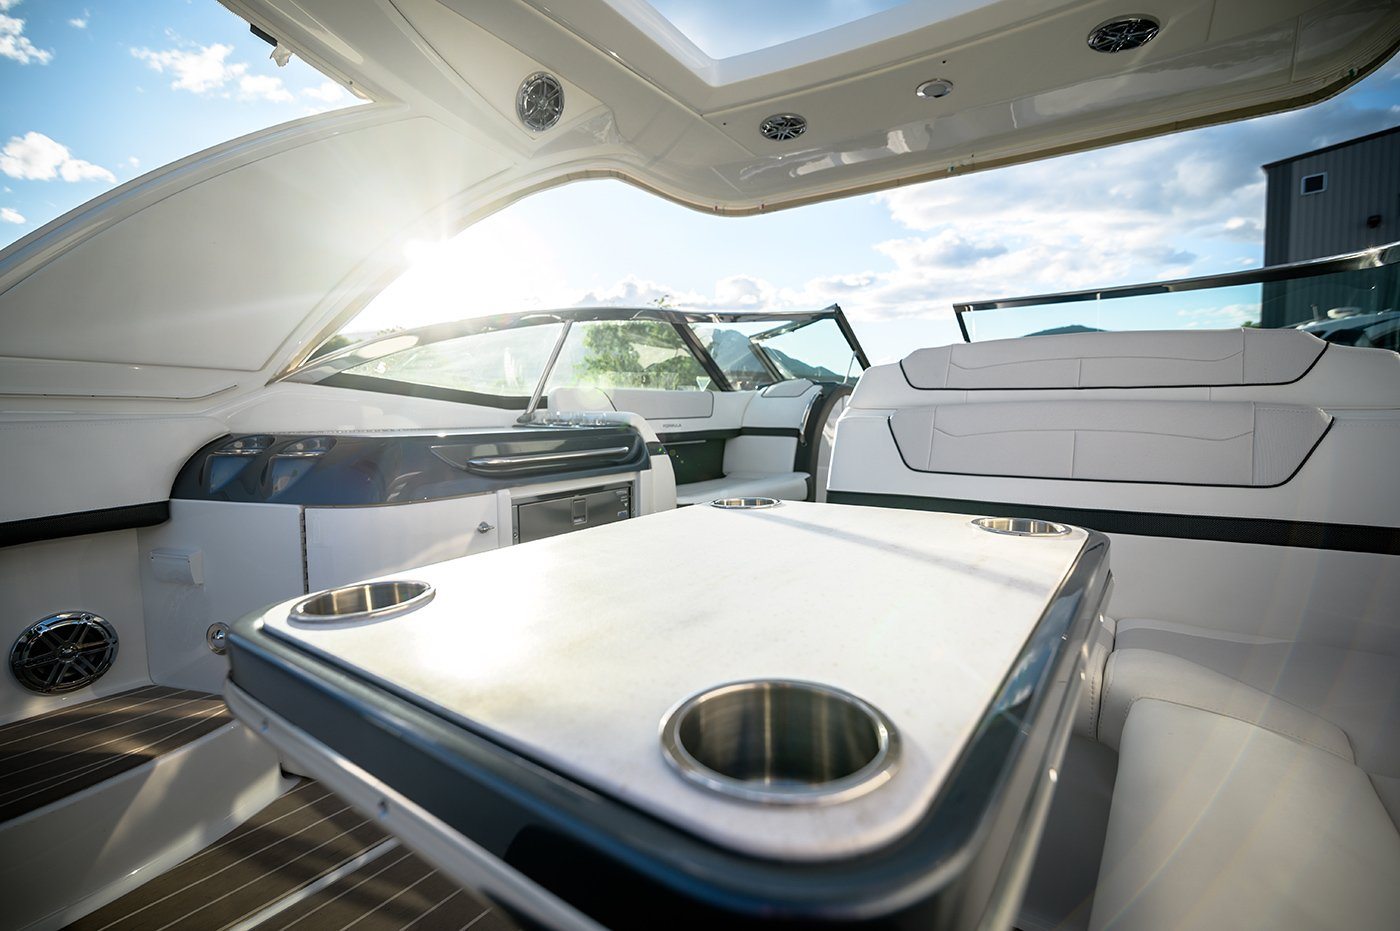 We've been detailing boats for more than 30 years in Kelowna BC - Flagship Marine